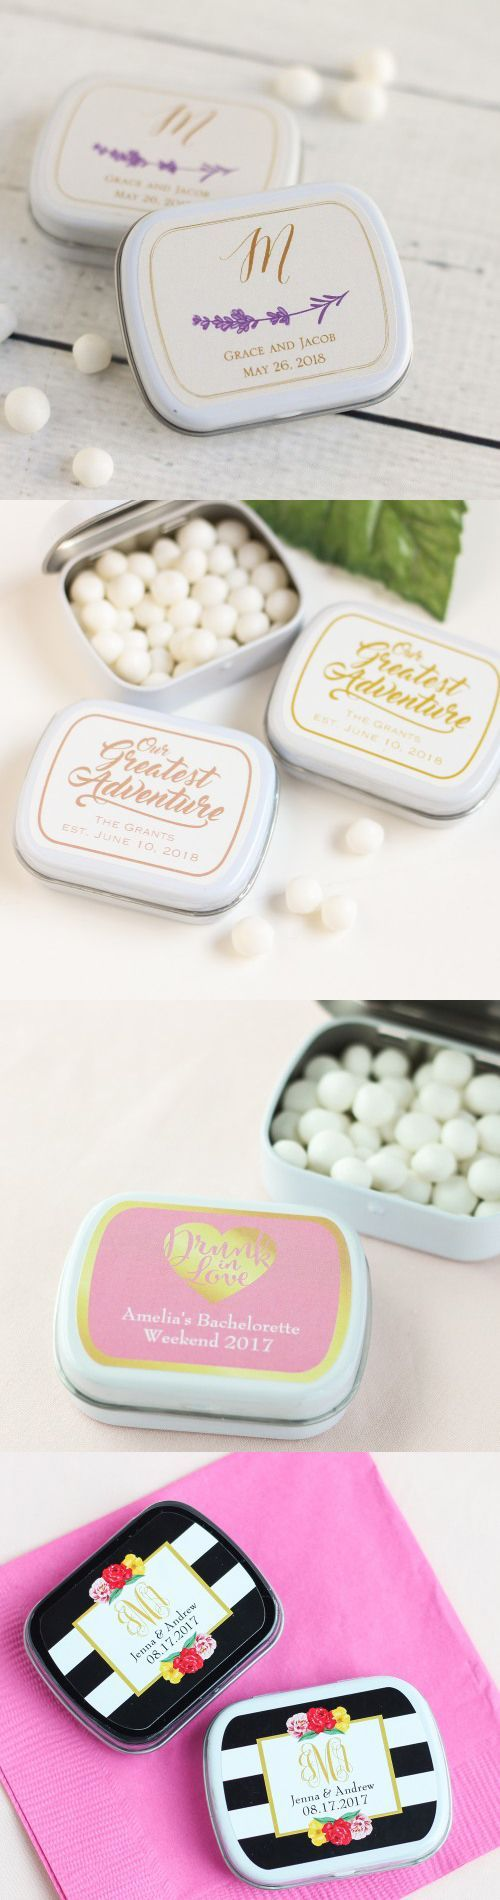 Awesome DIY Beach Wedding Decorations Ideas that are Personalized ...